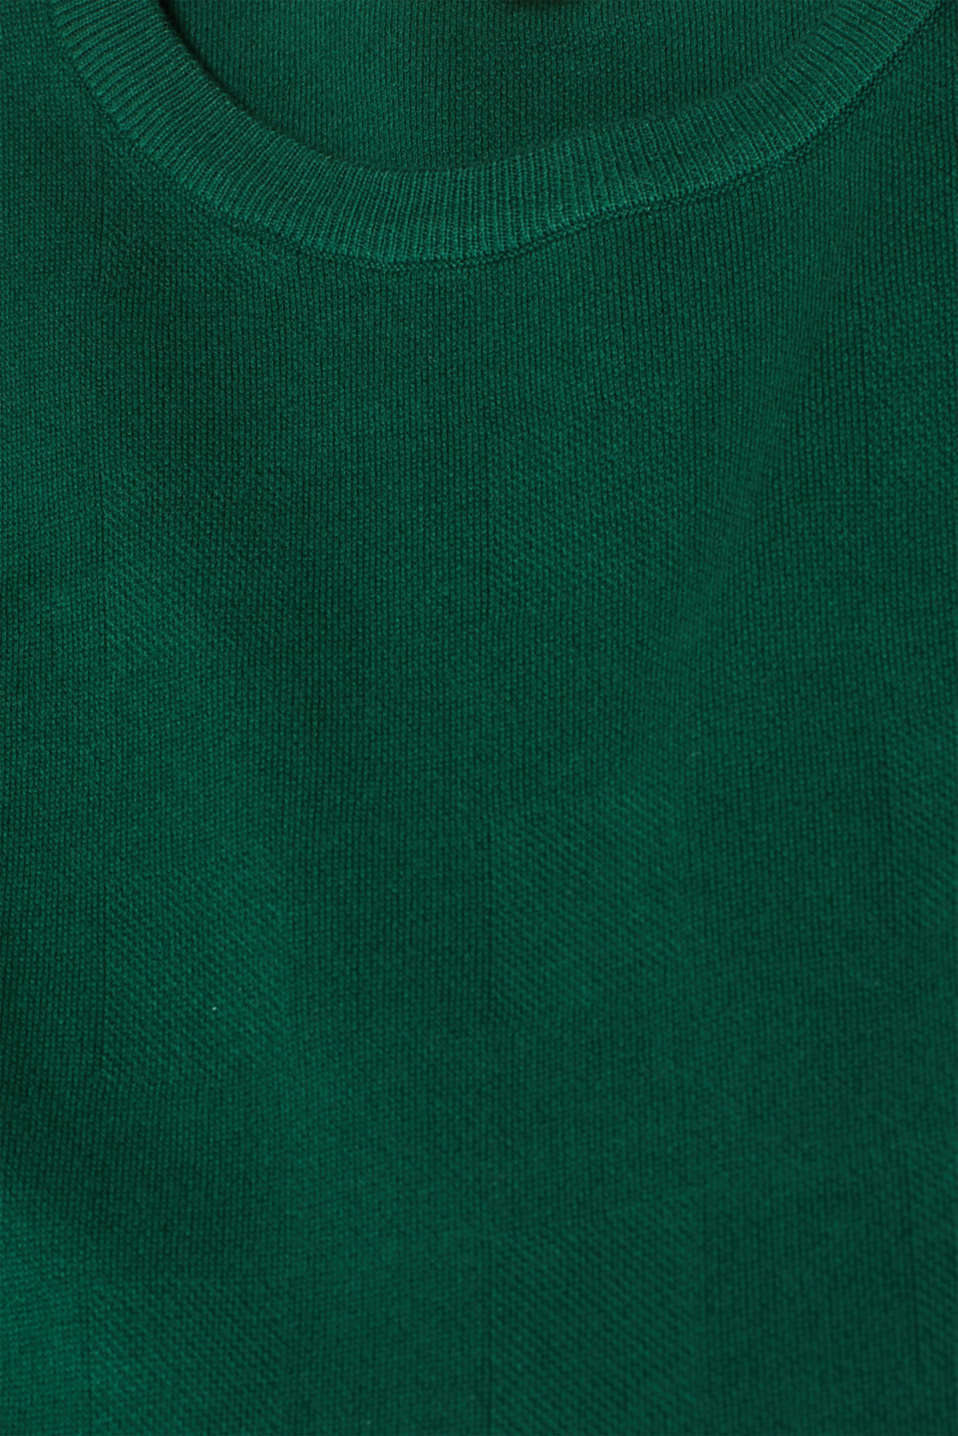 Compact knit dress in an A-line silhouette, BOTTLE GREEN, detail image number 4